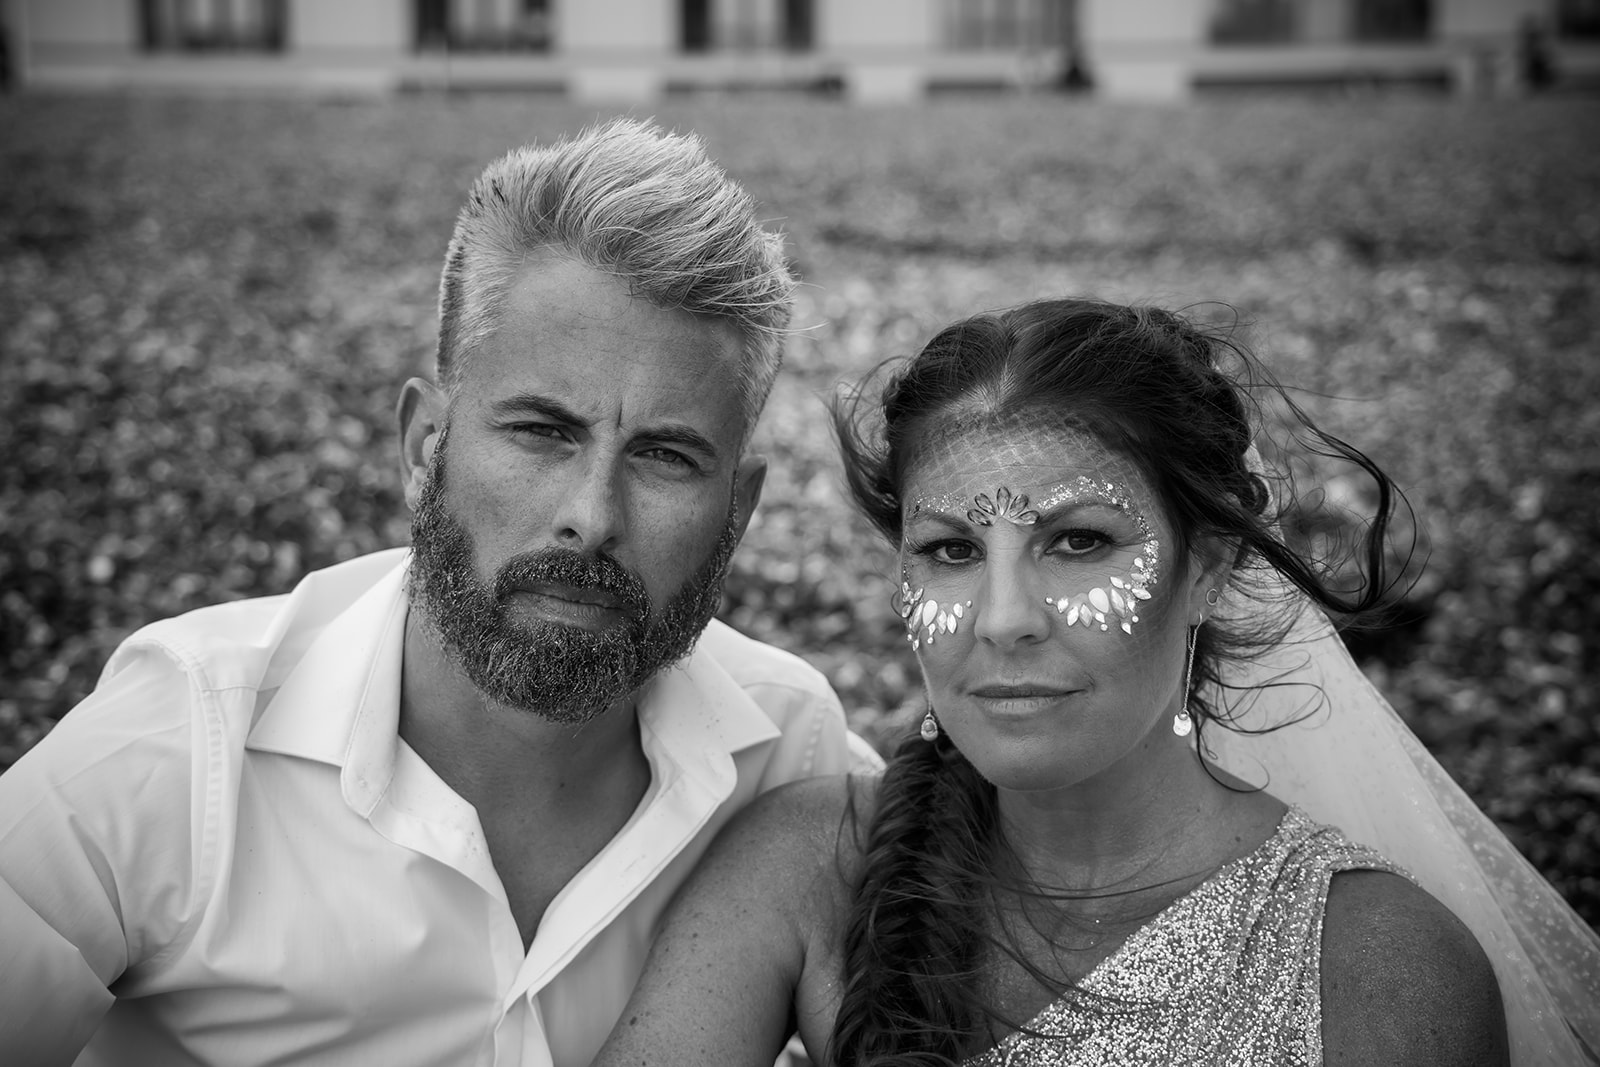 mermaid wedding - beach wedding - quirky wedding - unique wedding - alternative seaside wedding - alternative wedding - bridal facial glitter - wedding festival make up